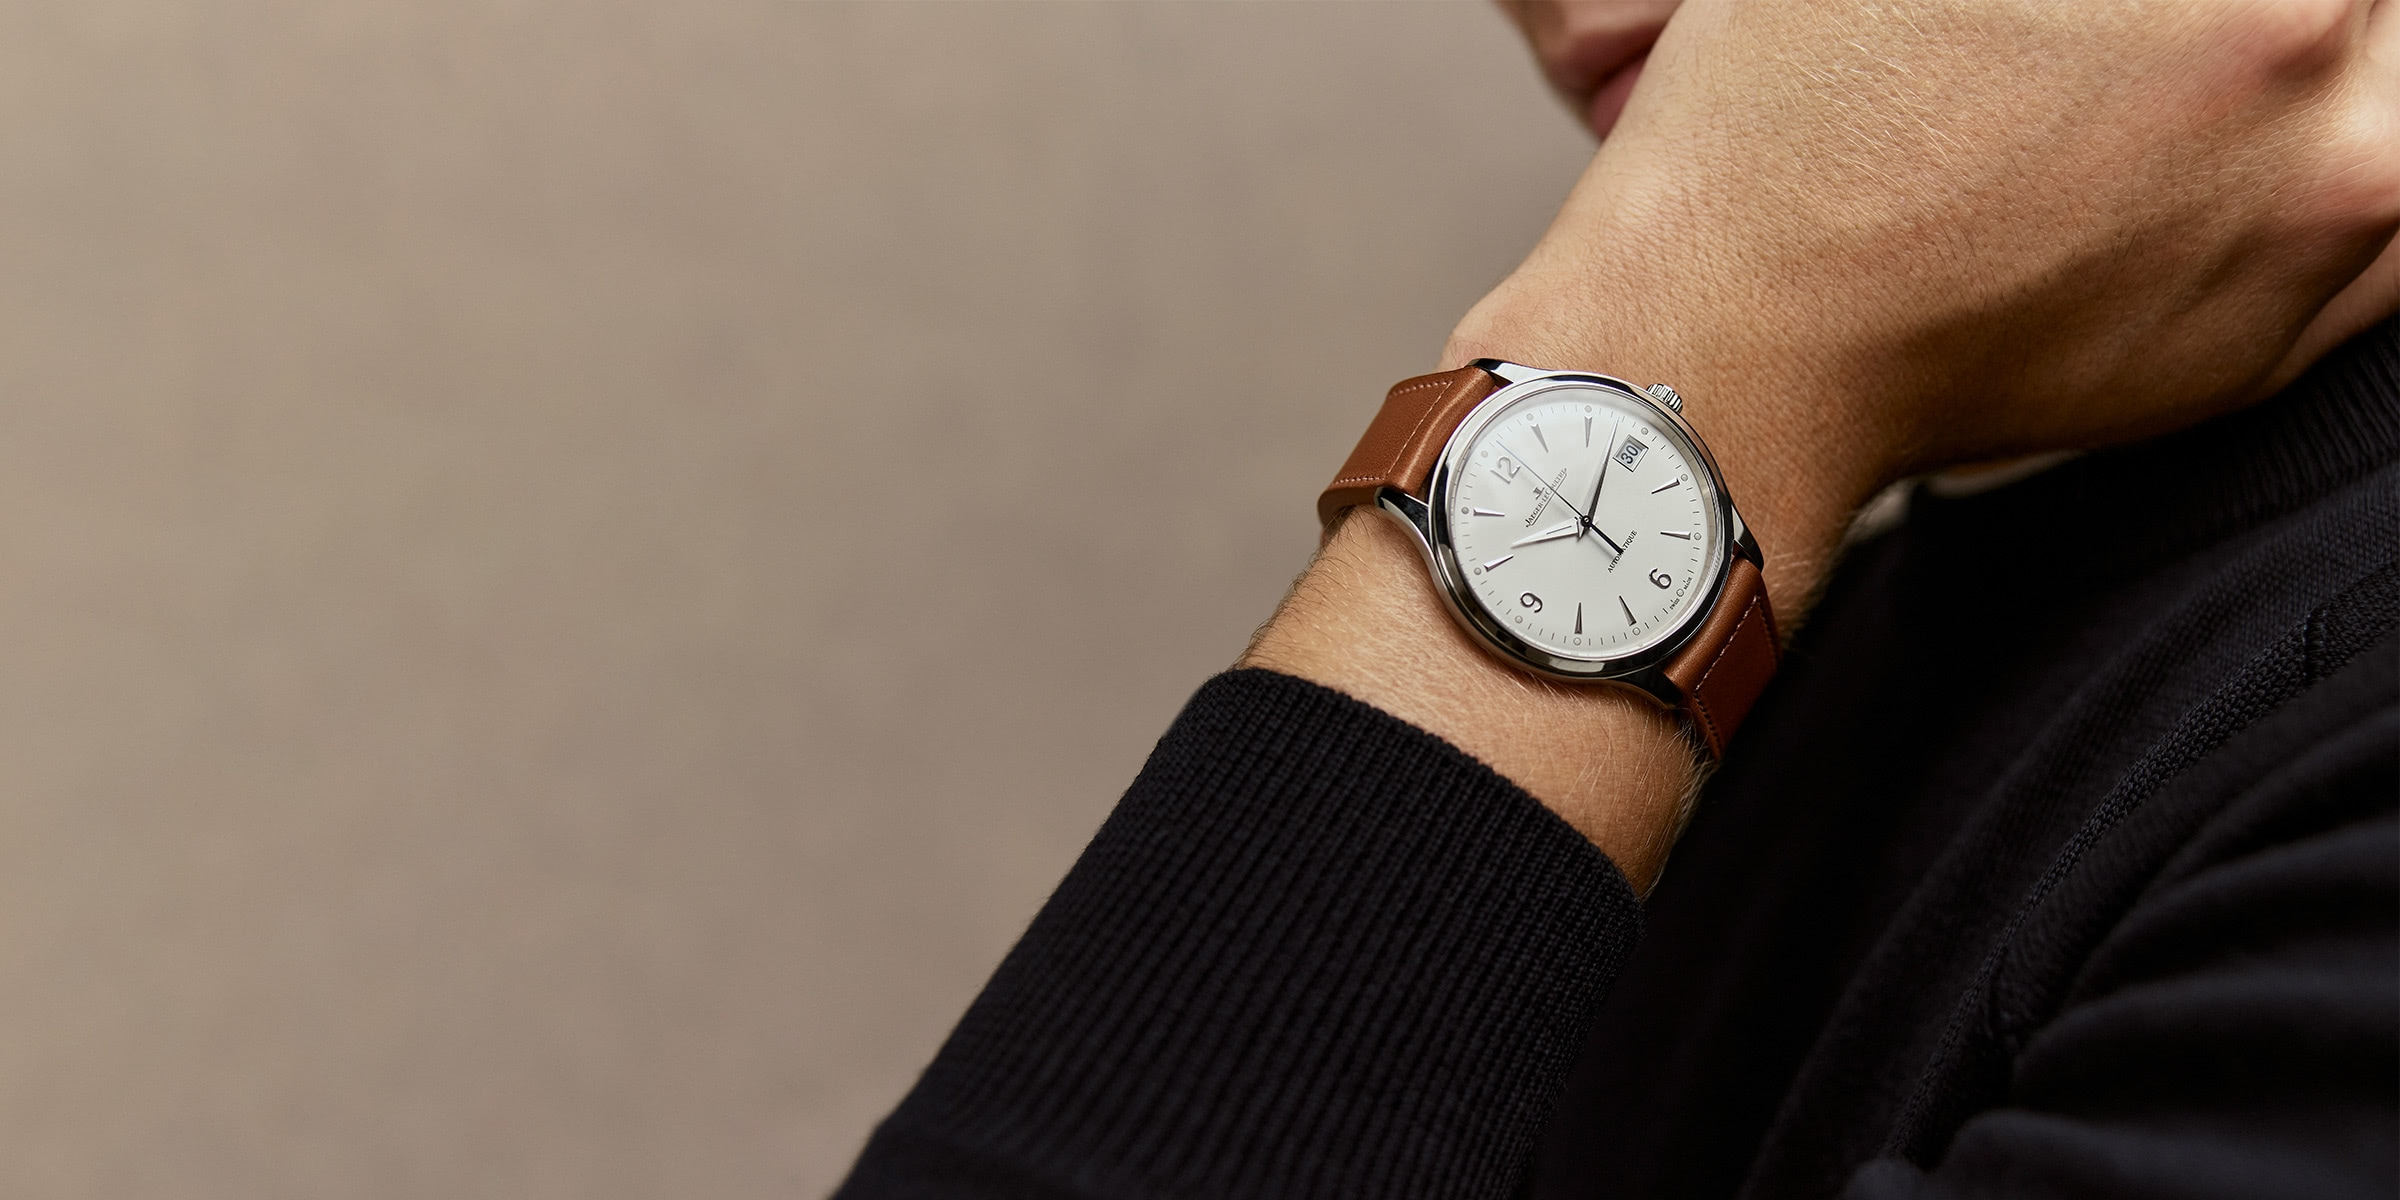 jaeger lecoultre luxury watches style guide luxe digital